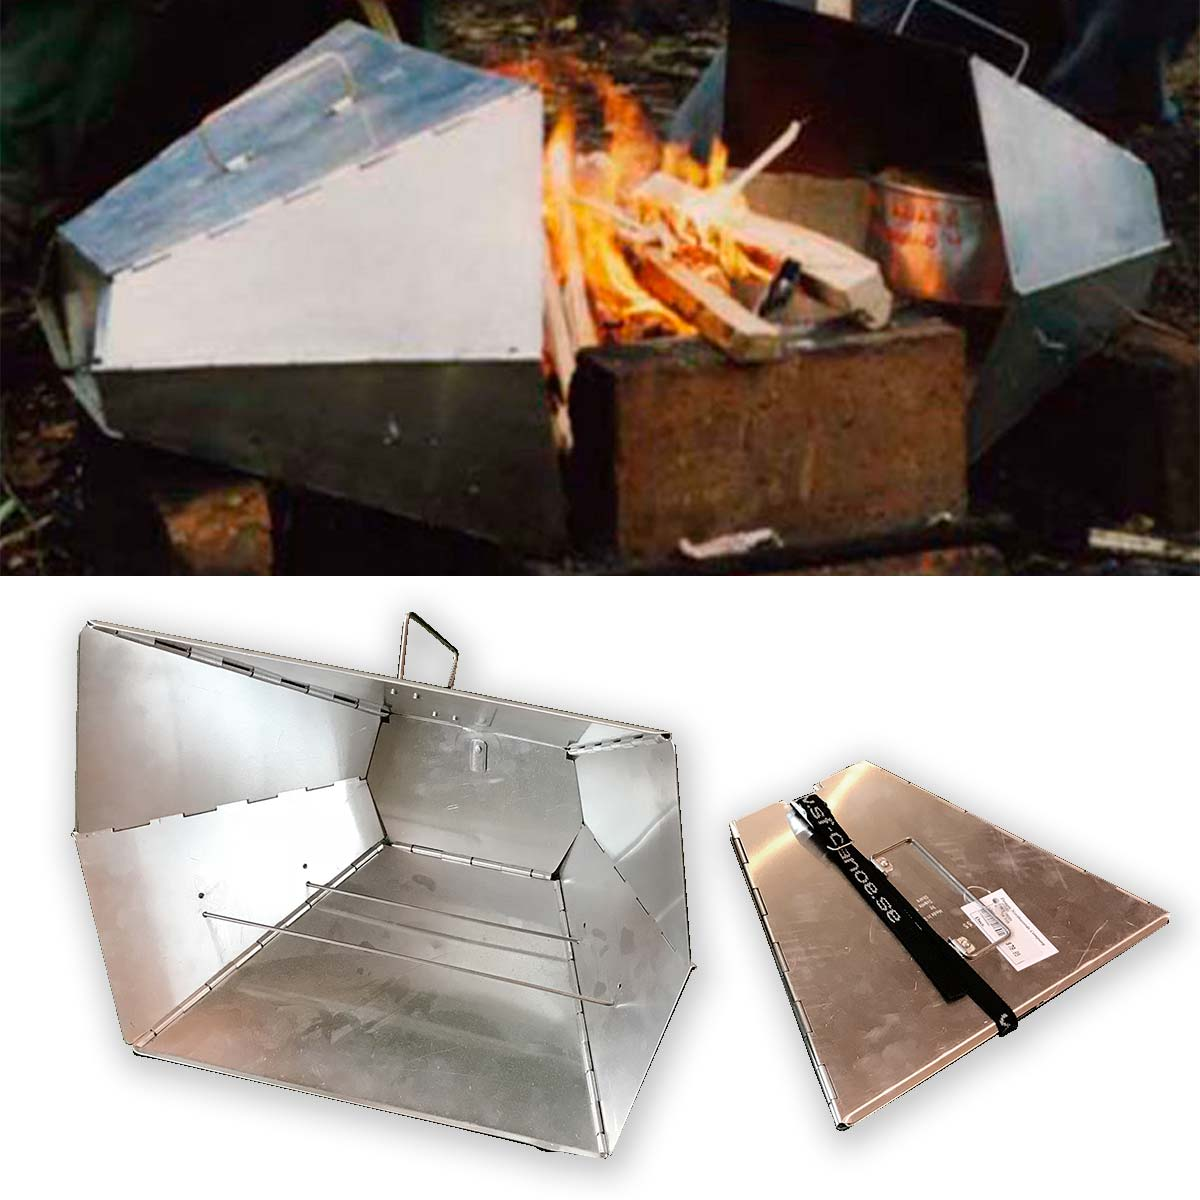 Reflector Oven Campfire Oven Camp Kitchen Gear